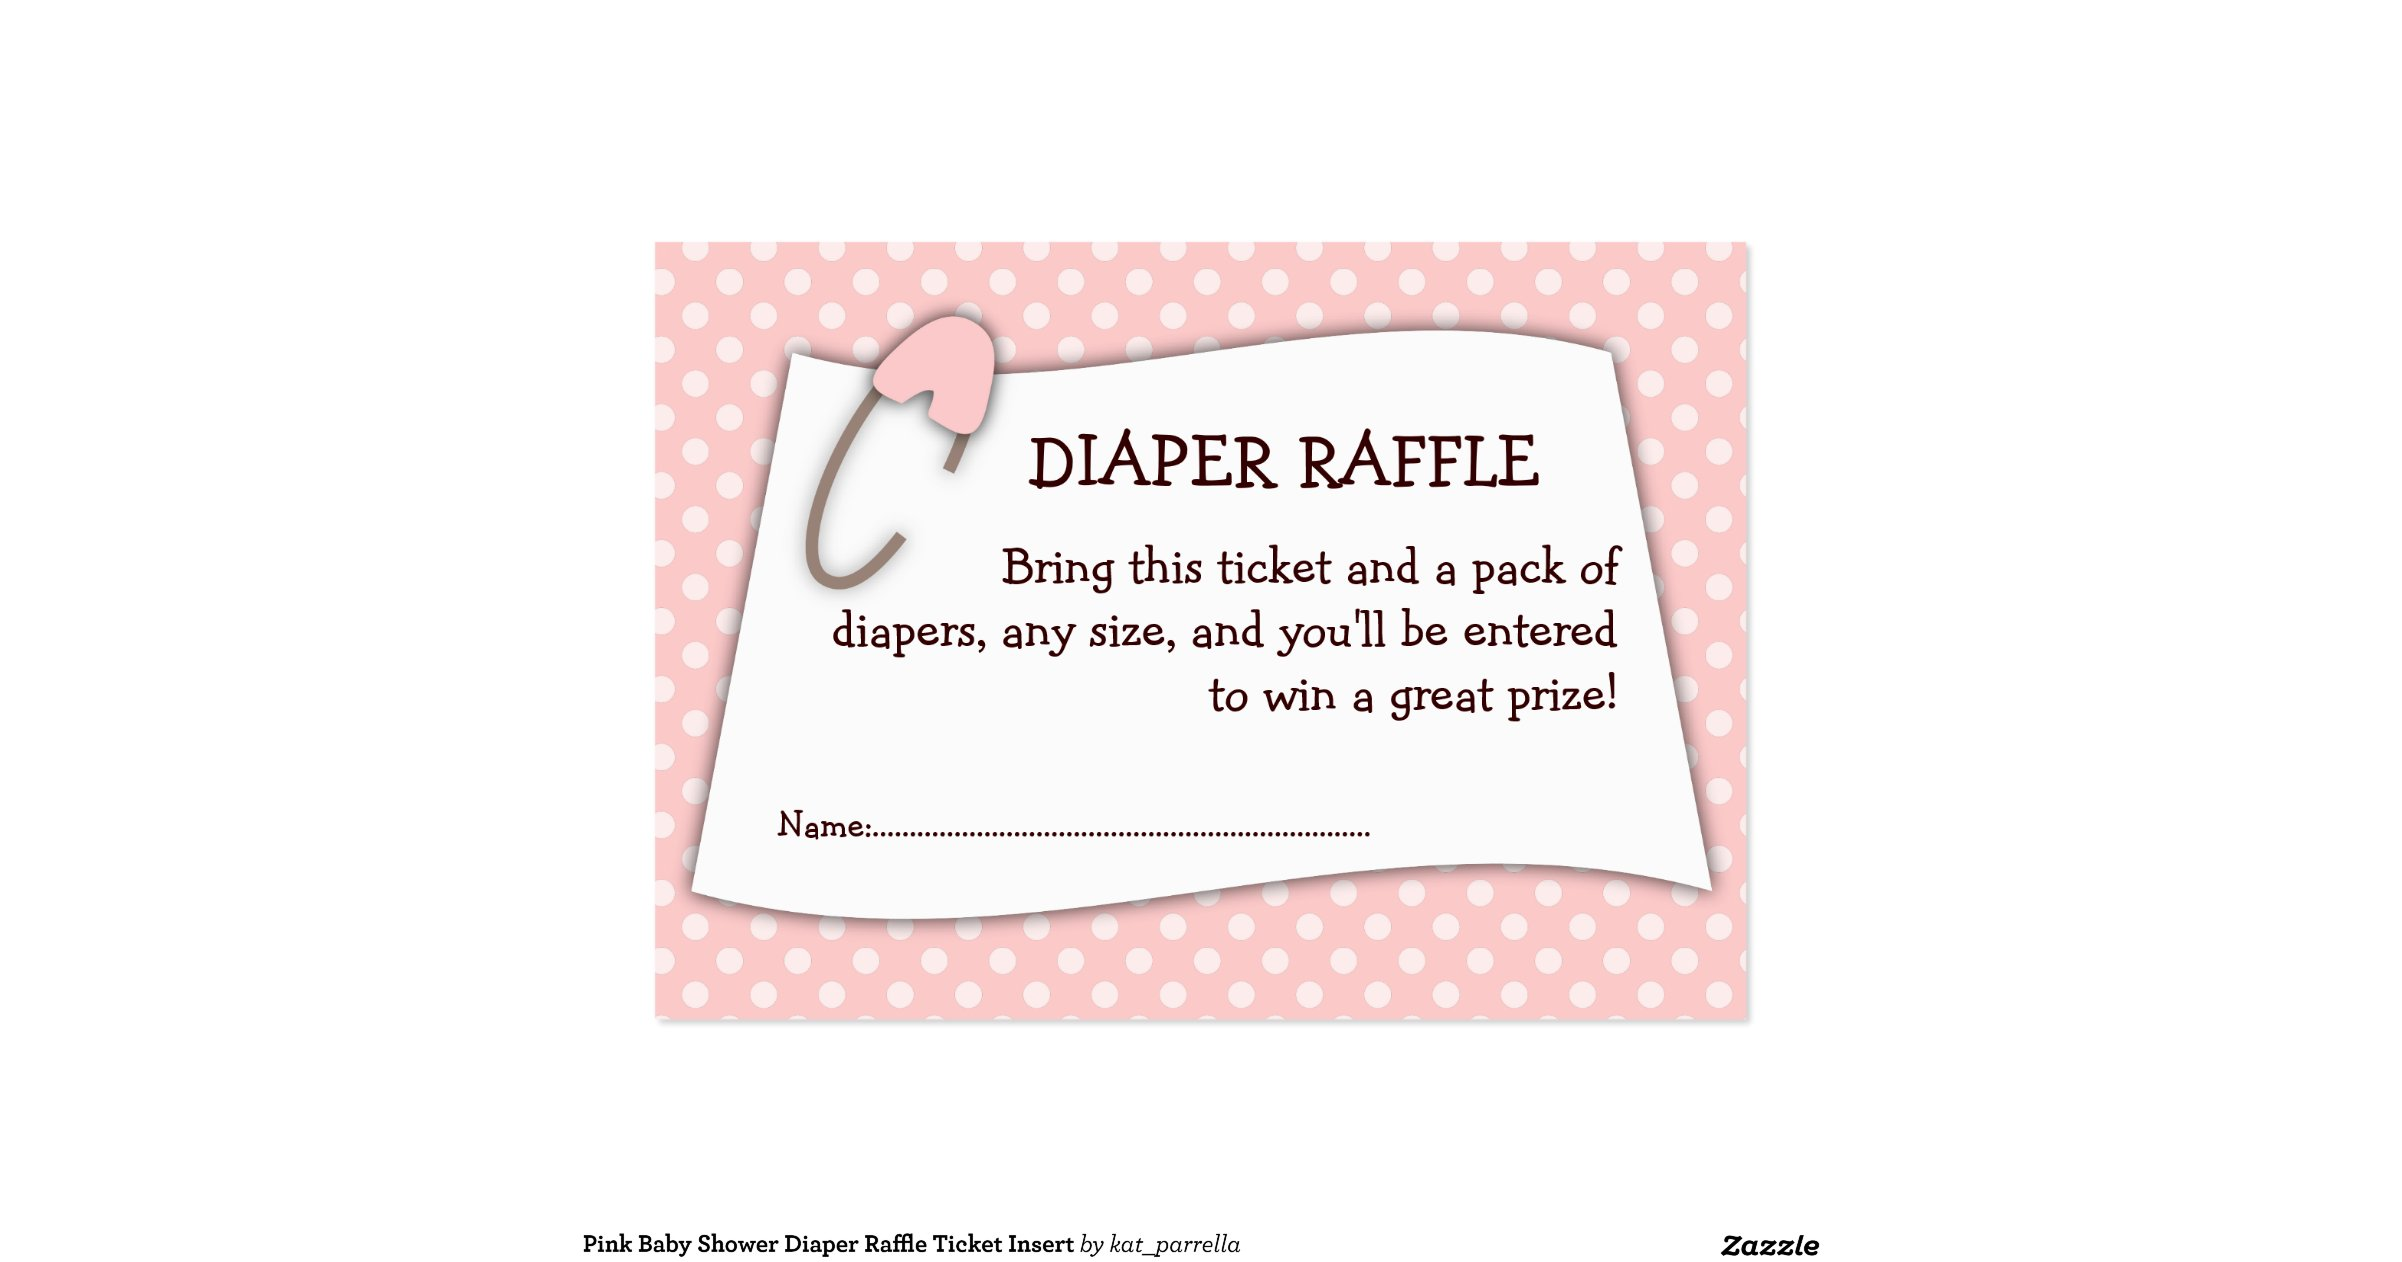 pink baby shower diaper raffle ticket insert large business cards